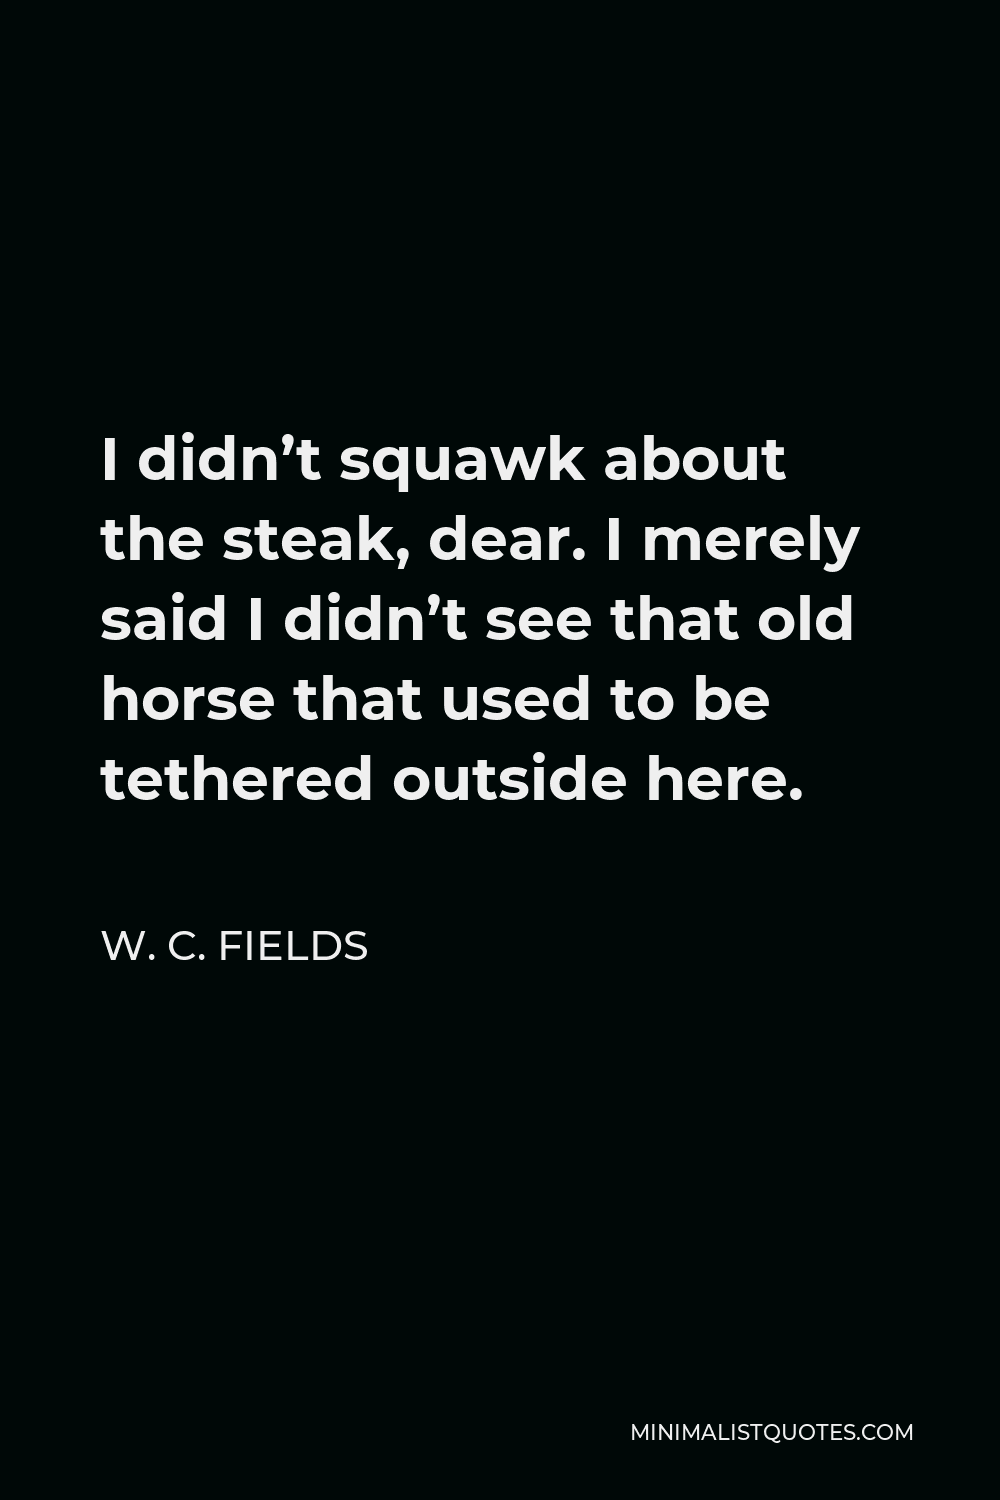 W. C. Fields Quote - I didn't squawk about the steak, dear. I merely said I didn't see that old horse that used to be tethered outside here.